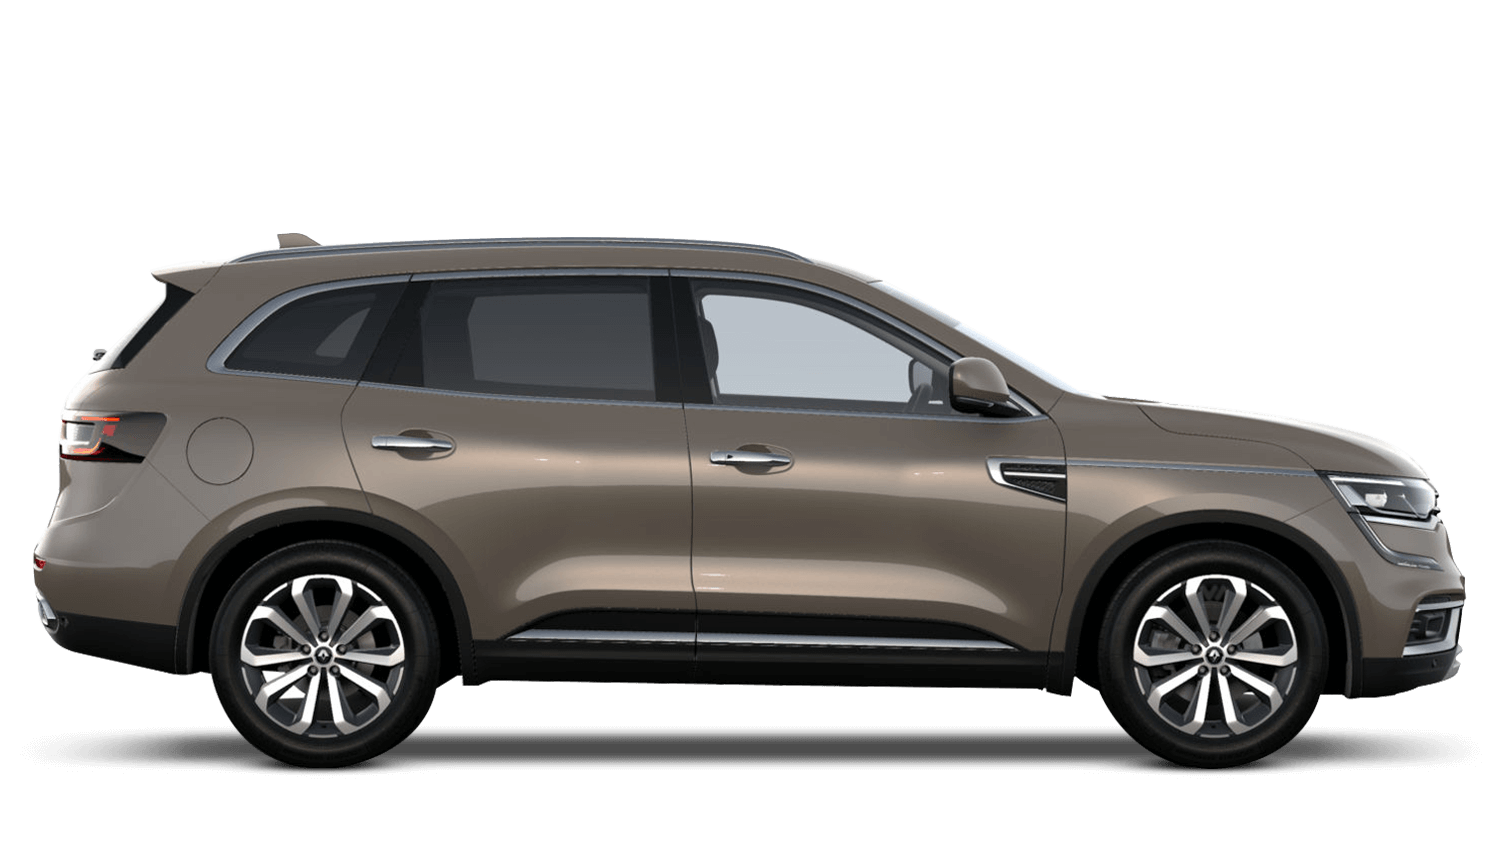 Renault Koleos Iconic Finance Available Renault